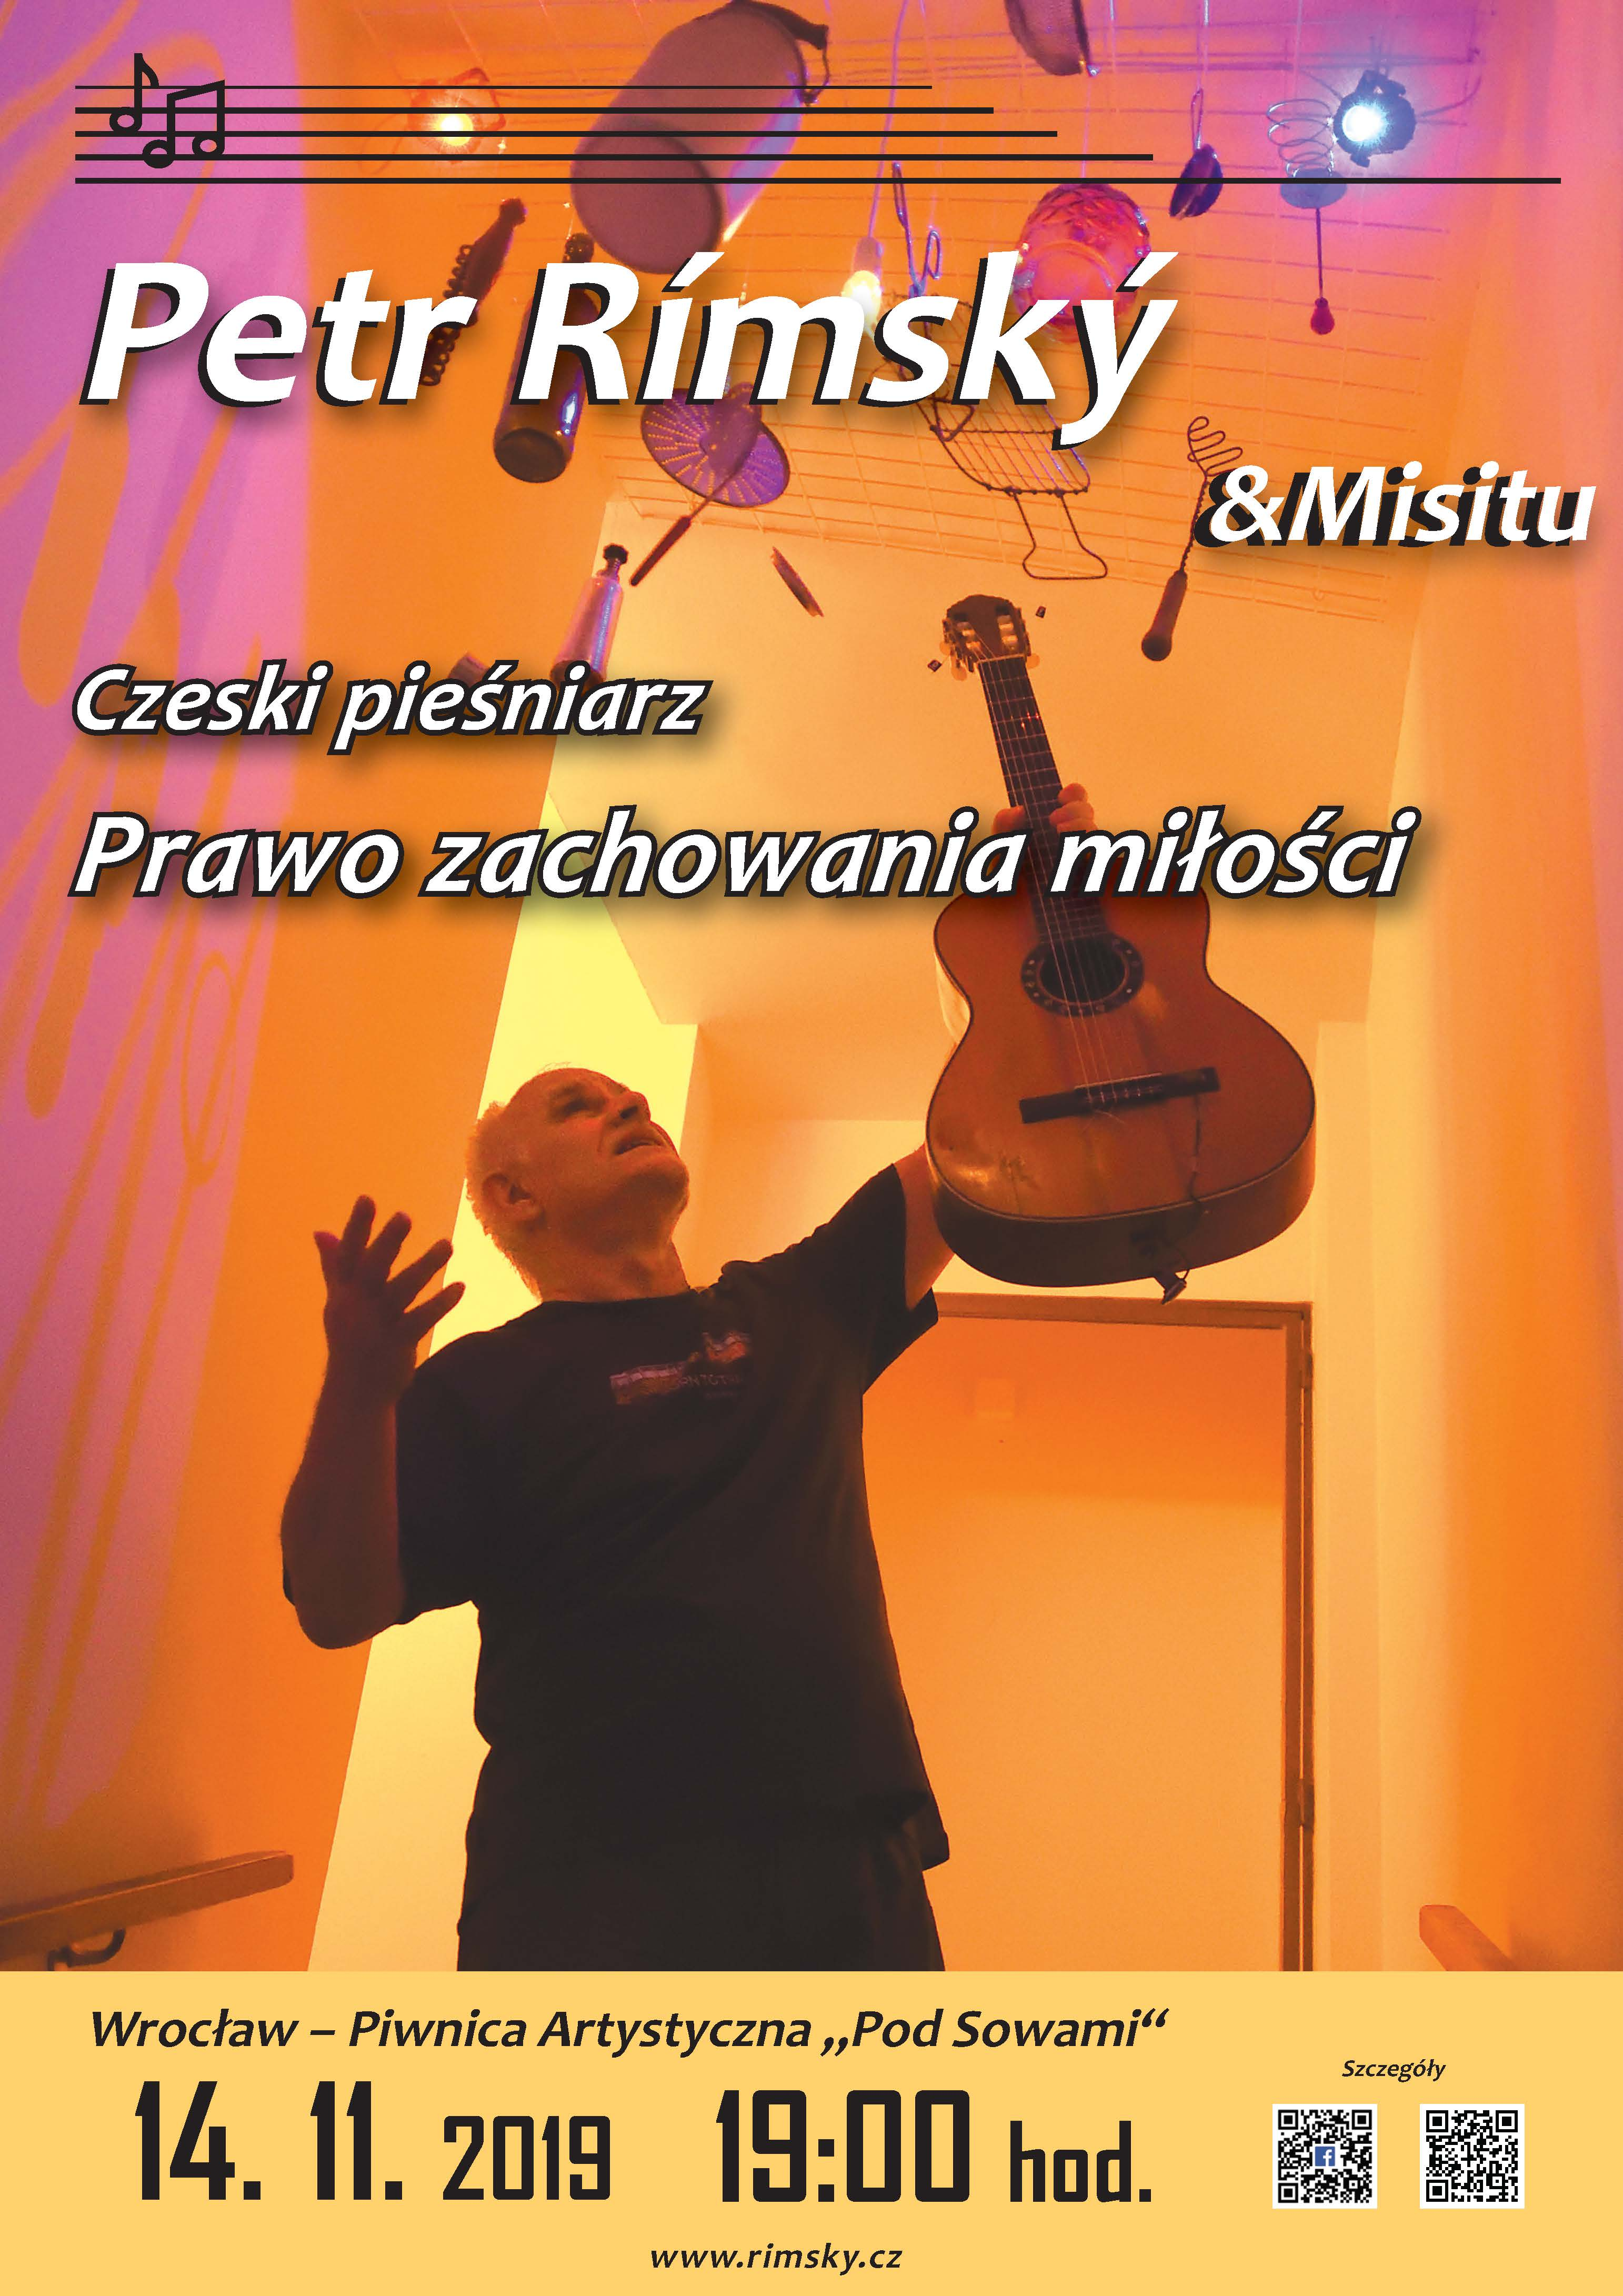 plakat A4 2019 11 14 wroclaw